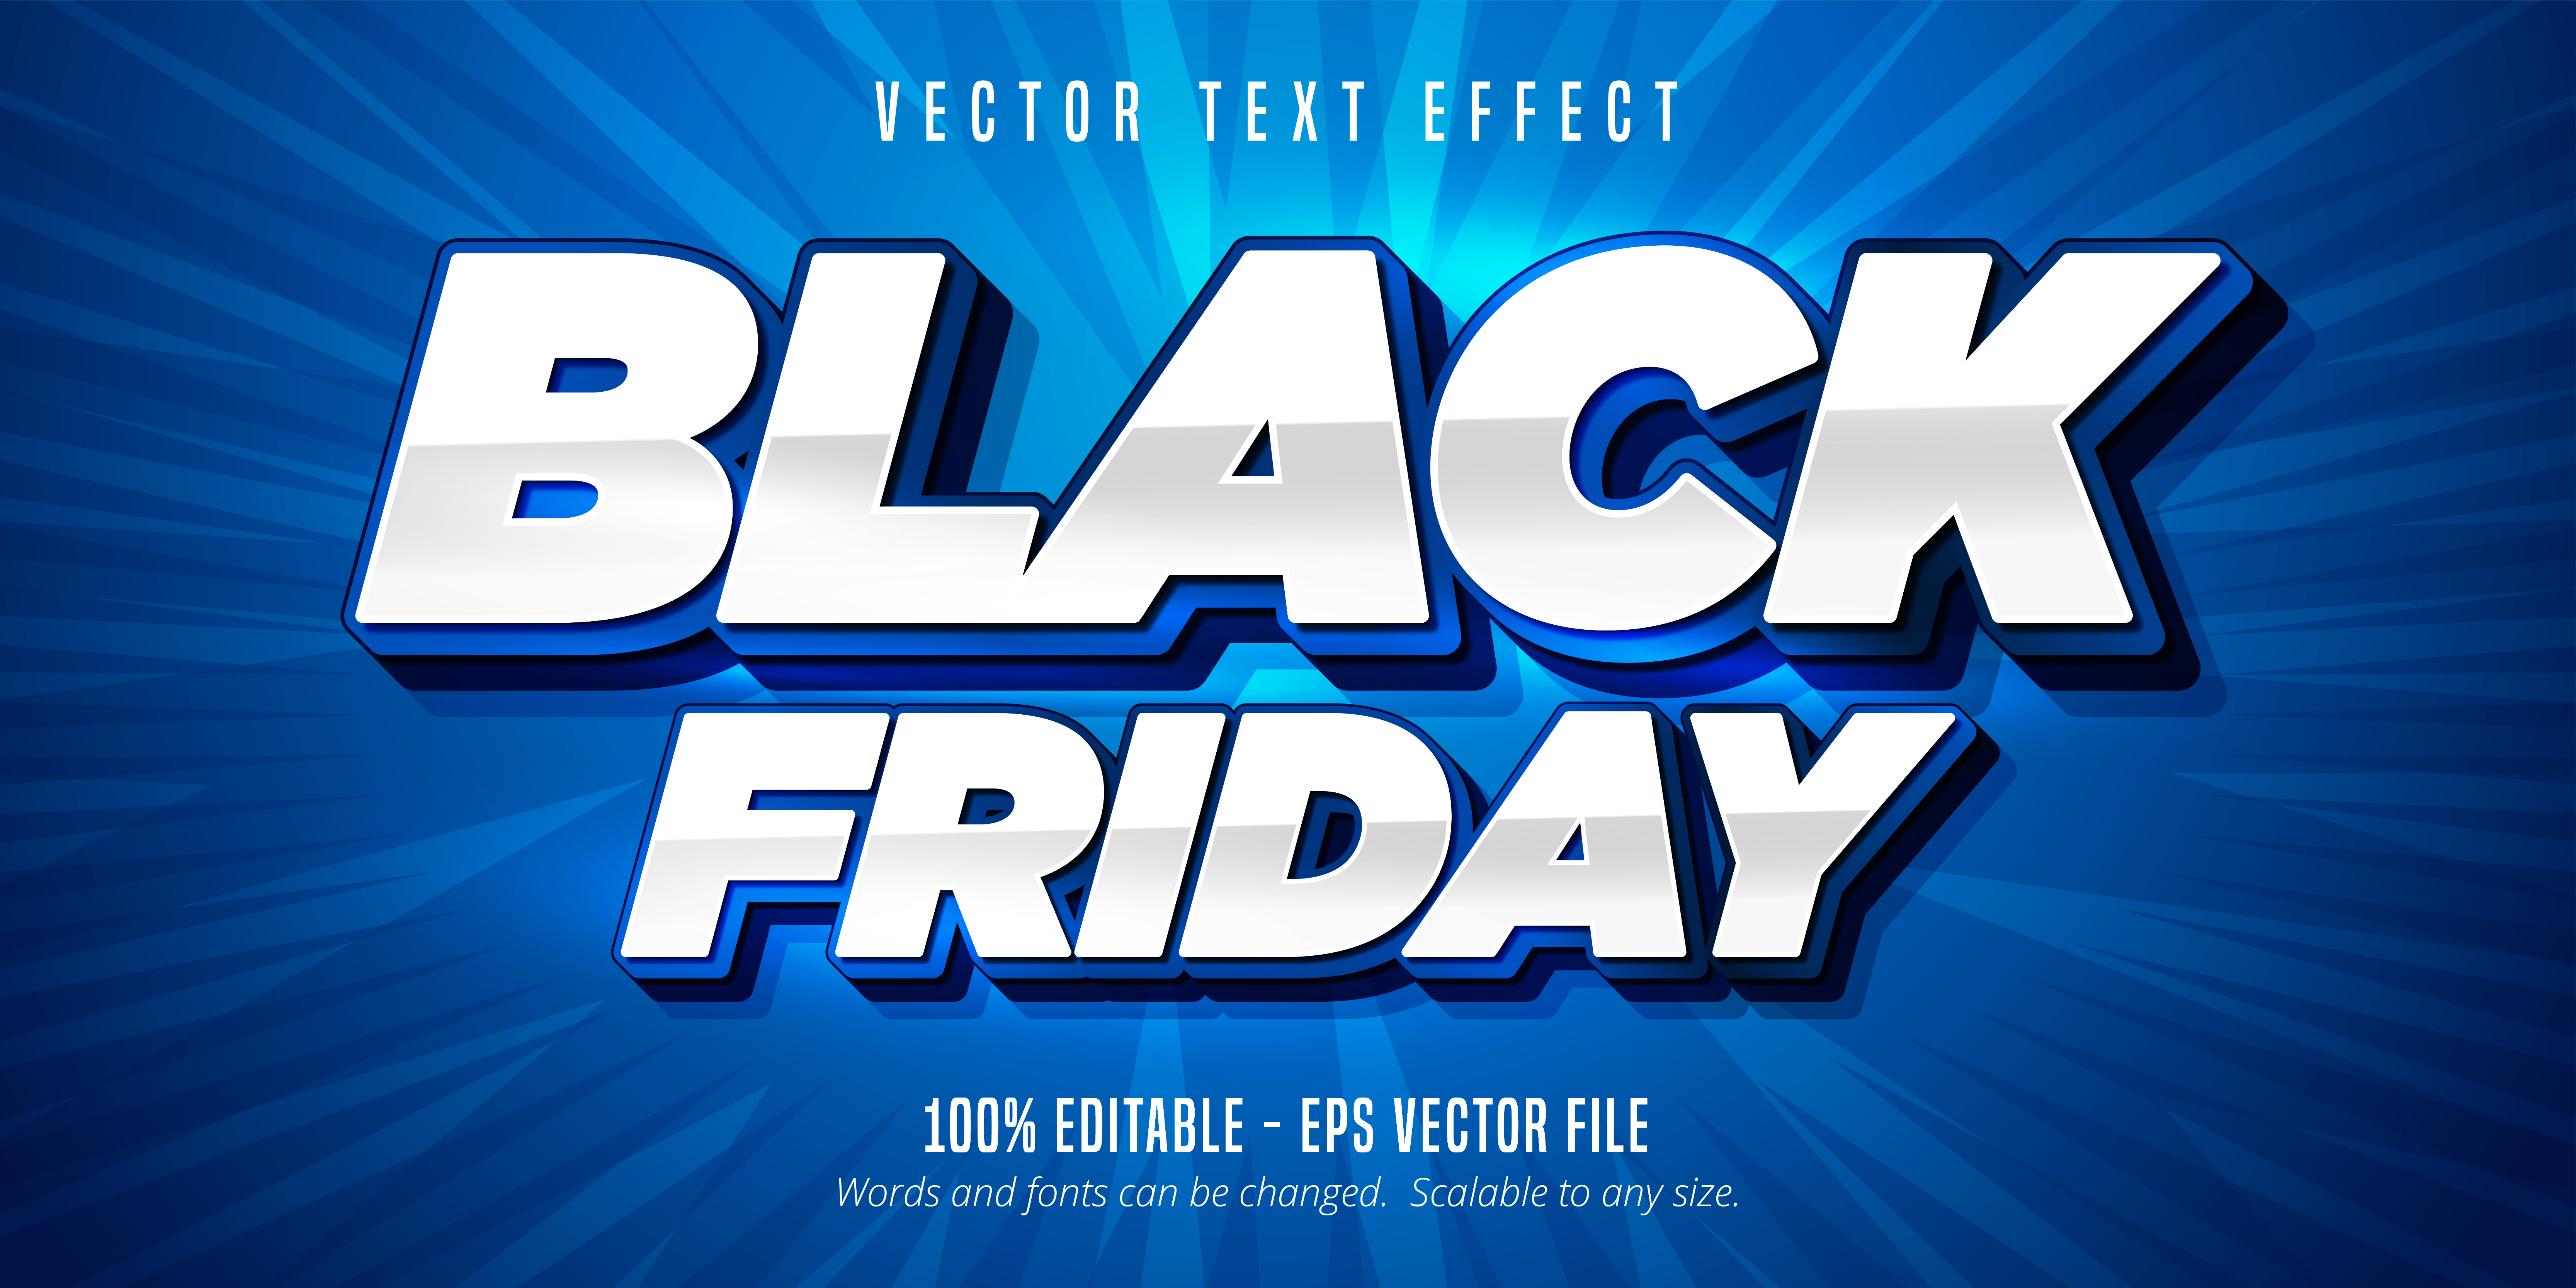 White And Blue Black Friday Text Editable Text Effect Download Free Vectors Clipart Graphics Vector Art